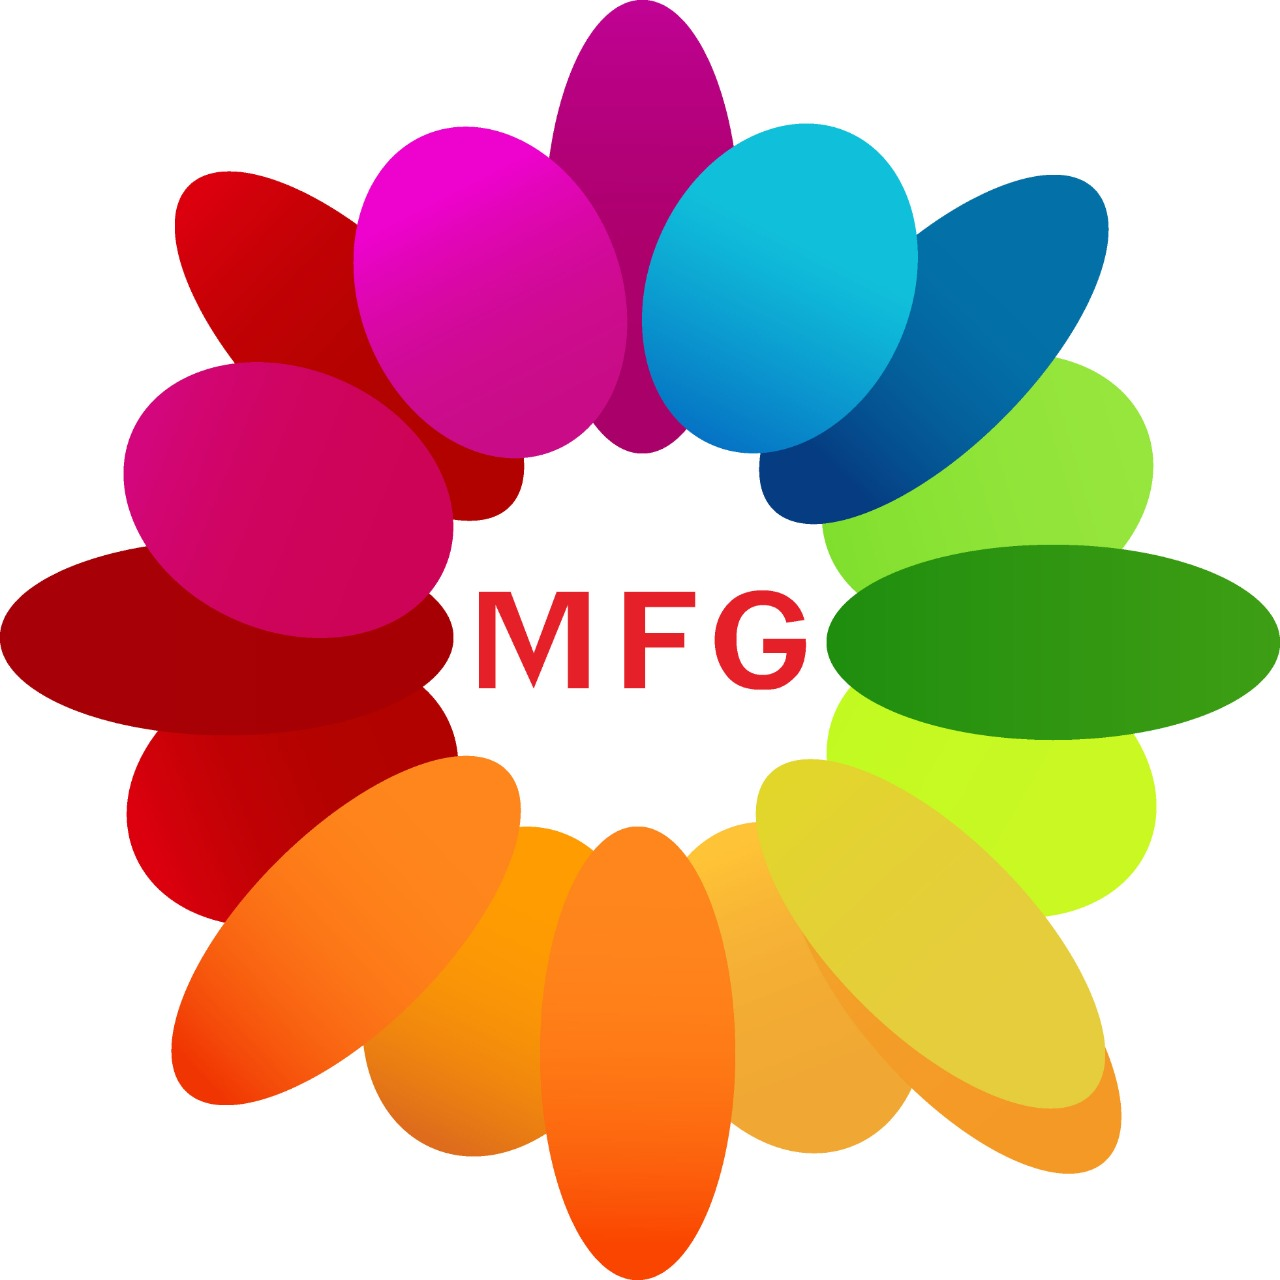 Arrangement of 10 orchids in lavender and white color